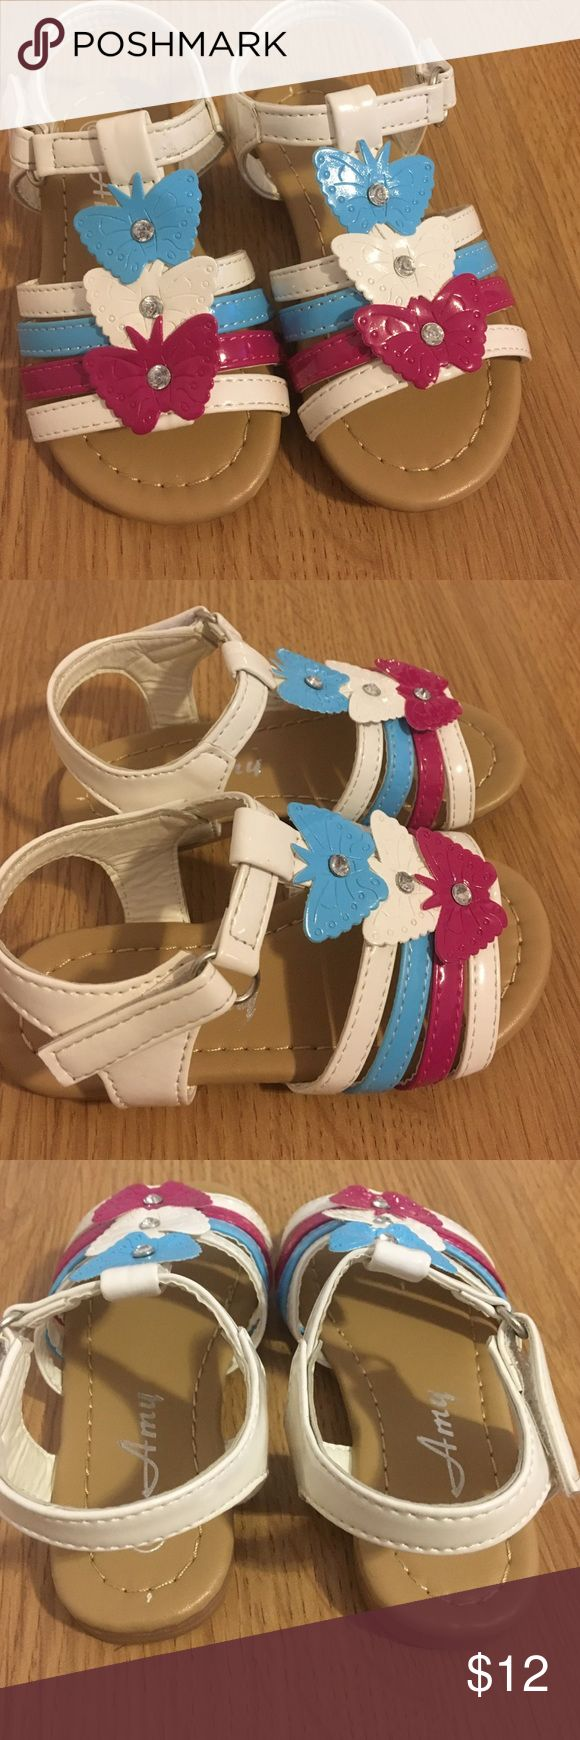 Blue pink white toddler size 6 sandals New blue, white, and pink sandals.  Has butterflies at the tops of the sandals.  Very cute. Size 6 toddler. Amy Coe Shoes Sandals & Flip Flops